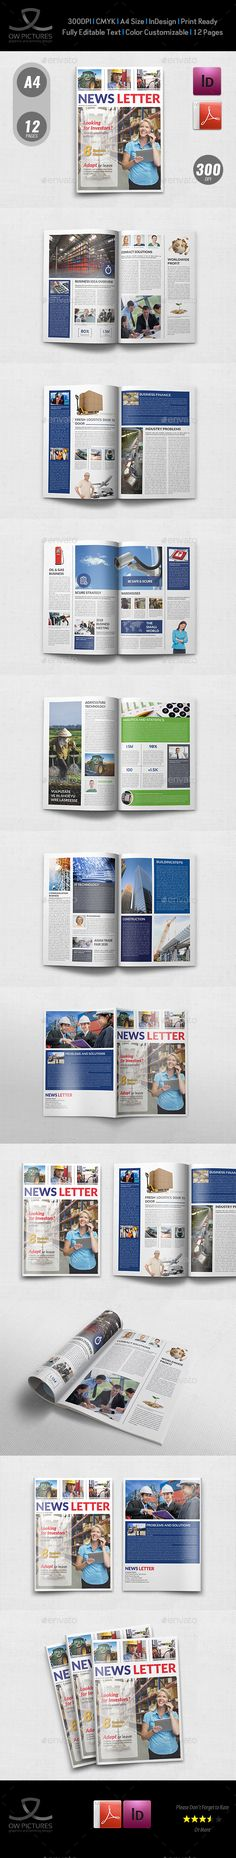 Multipurpose Newsletter - 12 Pages - Newsletters Print Templates Download here : https://graphicriver.net/item/multipurpose-newsletter-12-pages/19166458?s_rank=19&ref=Al-fatih